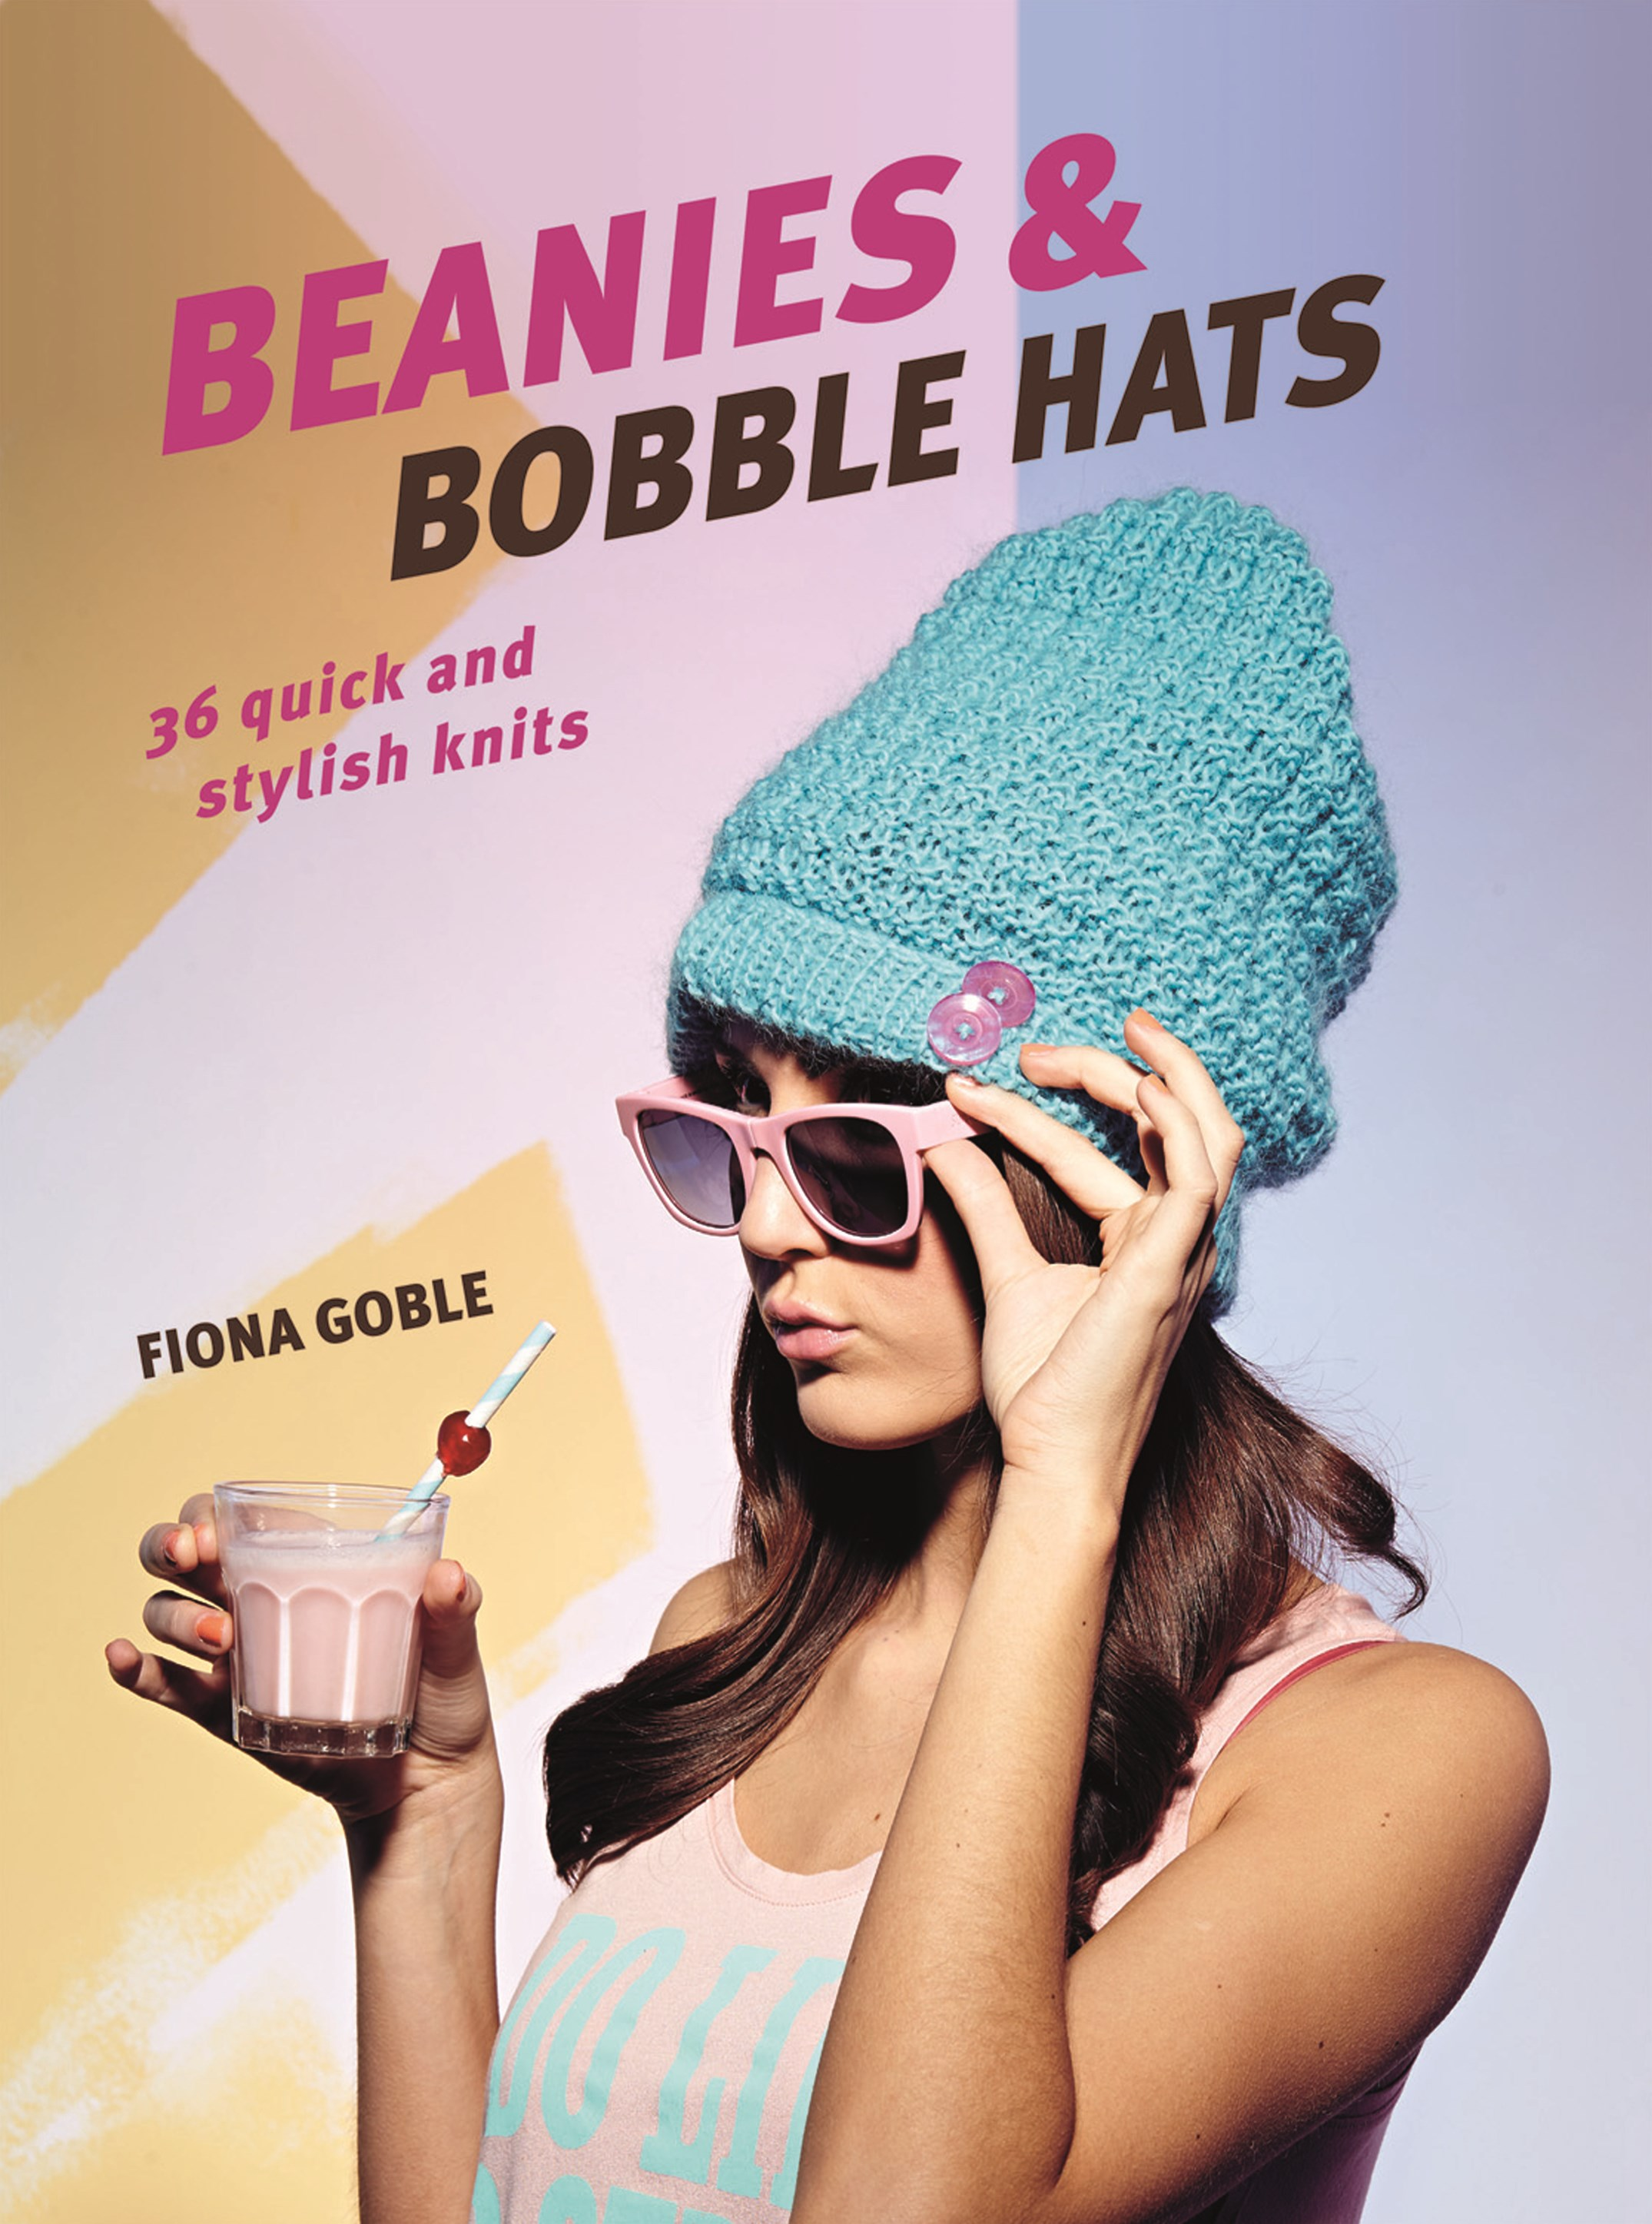 Beanies and Bobble Hats